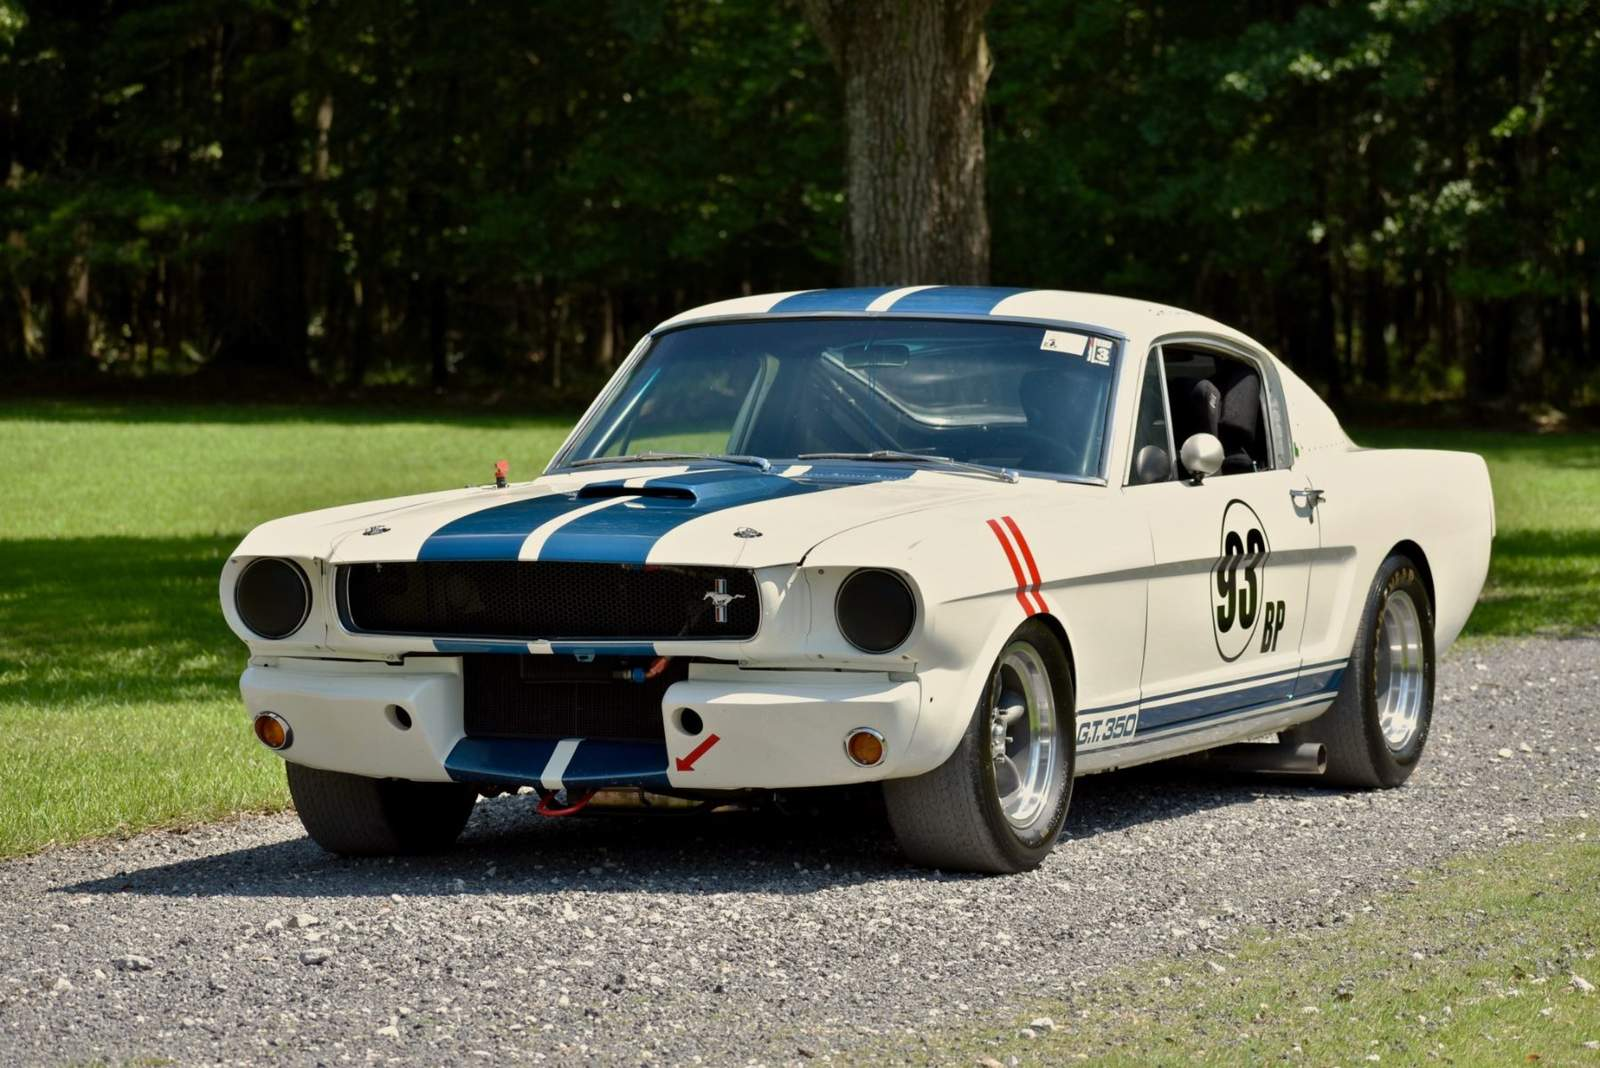 https://s3.amazonaws.com/uploads.bmxmuseum.com/user-images/156598/1966_ford_mustang_fastback46008f91366.jpeg